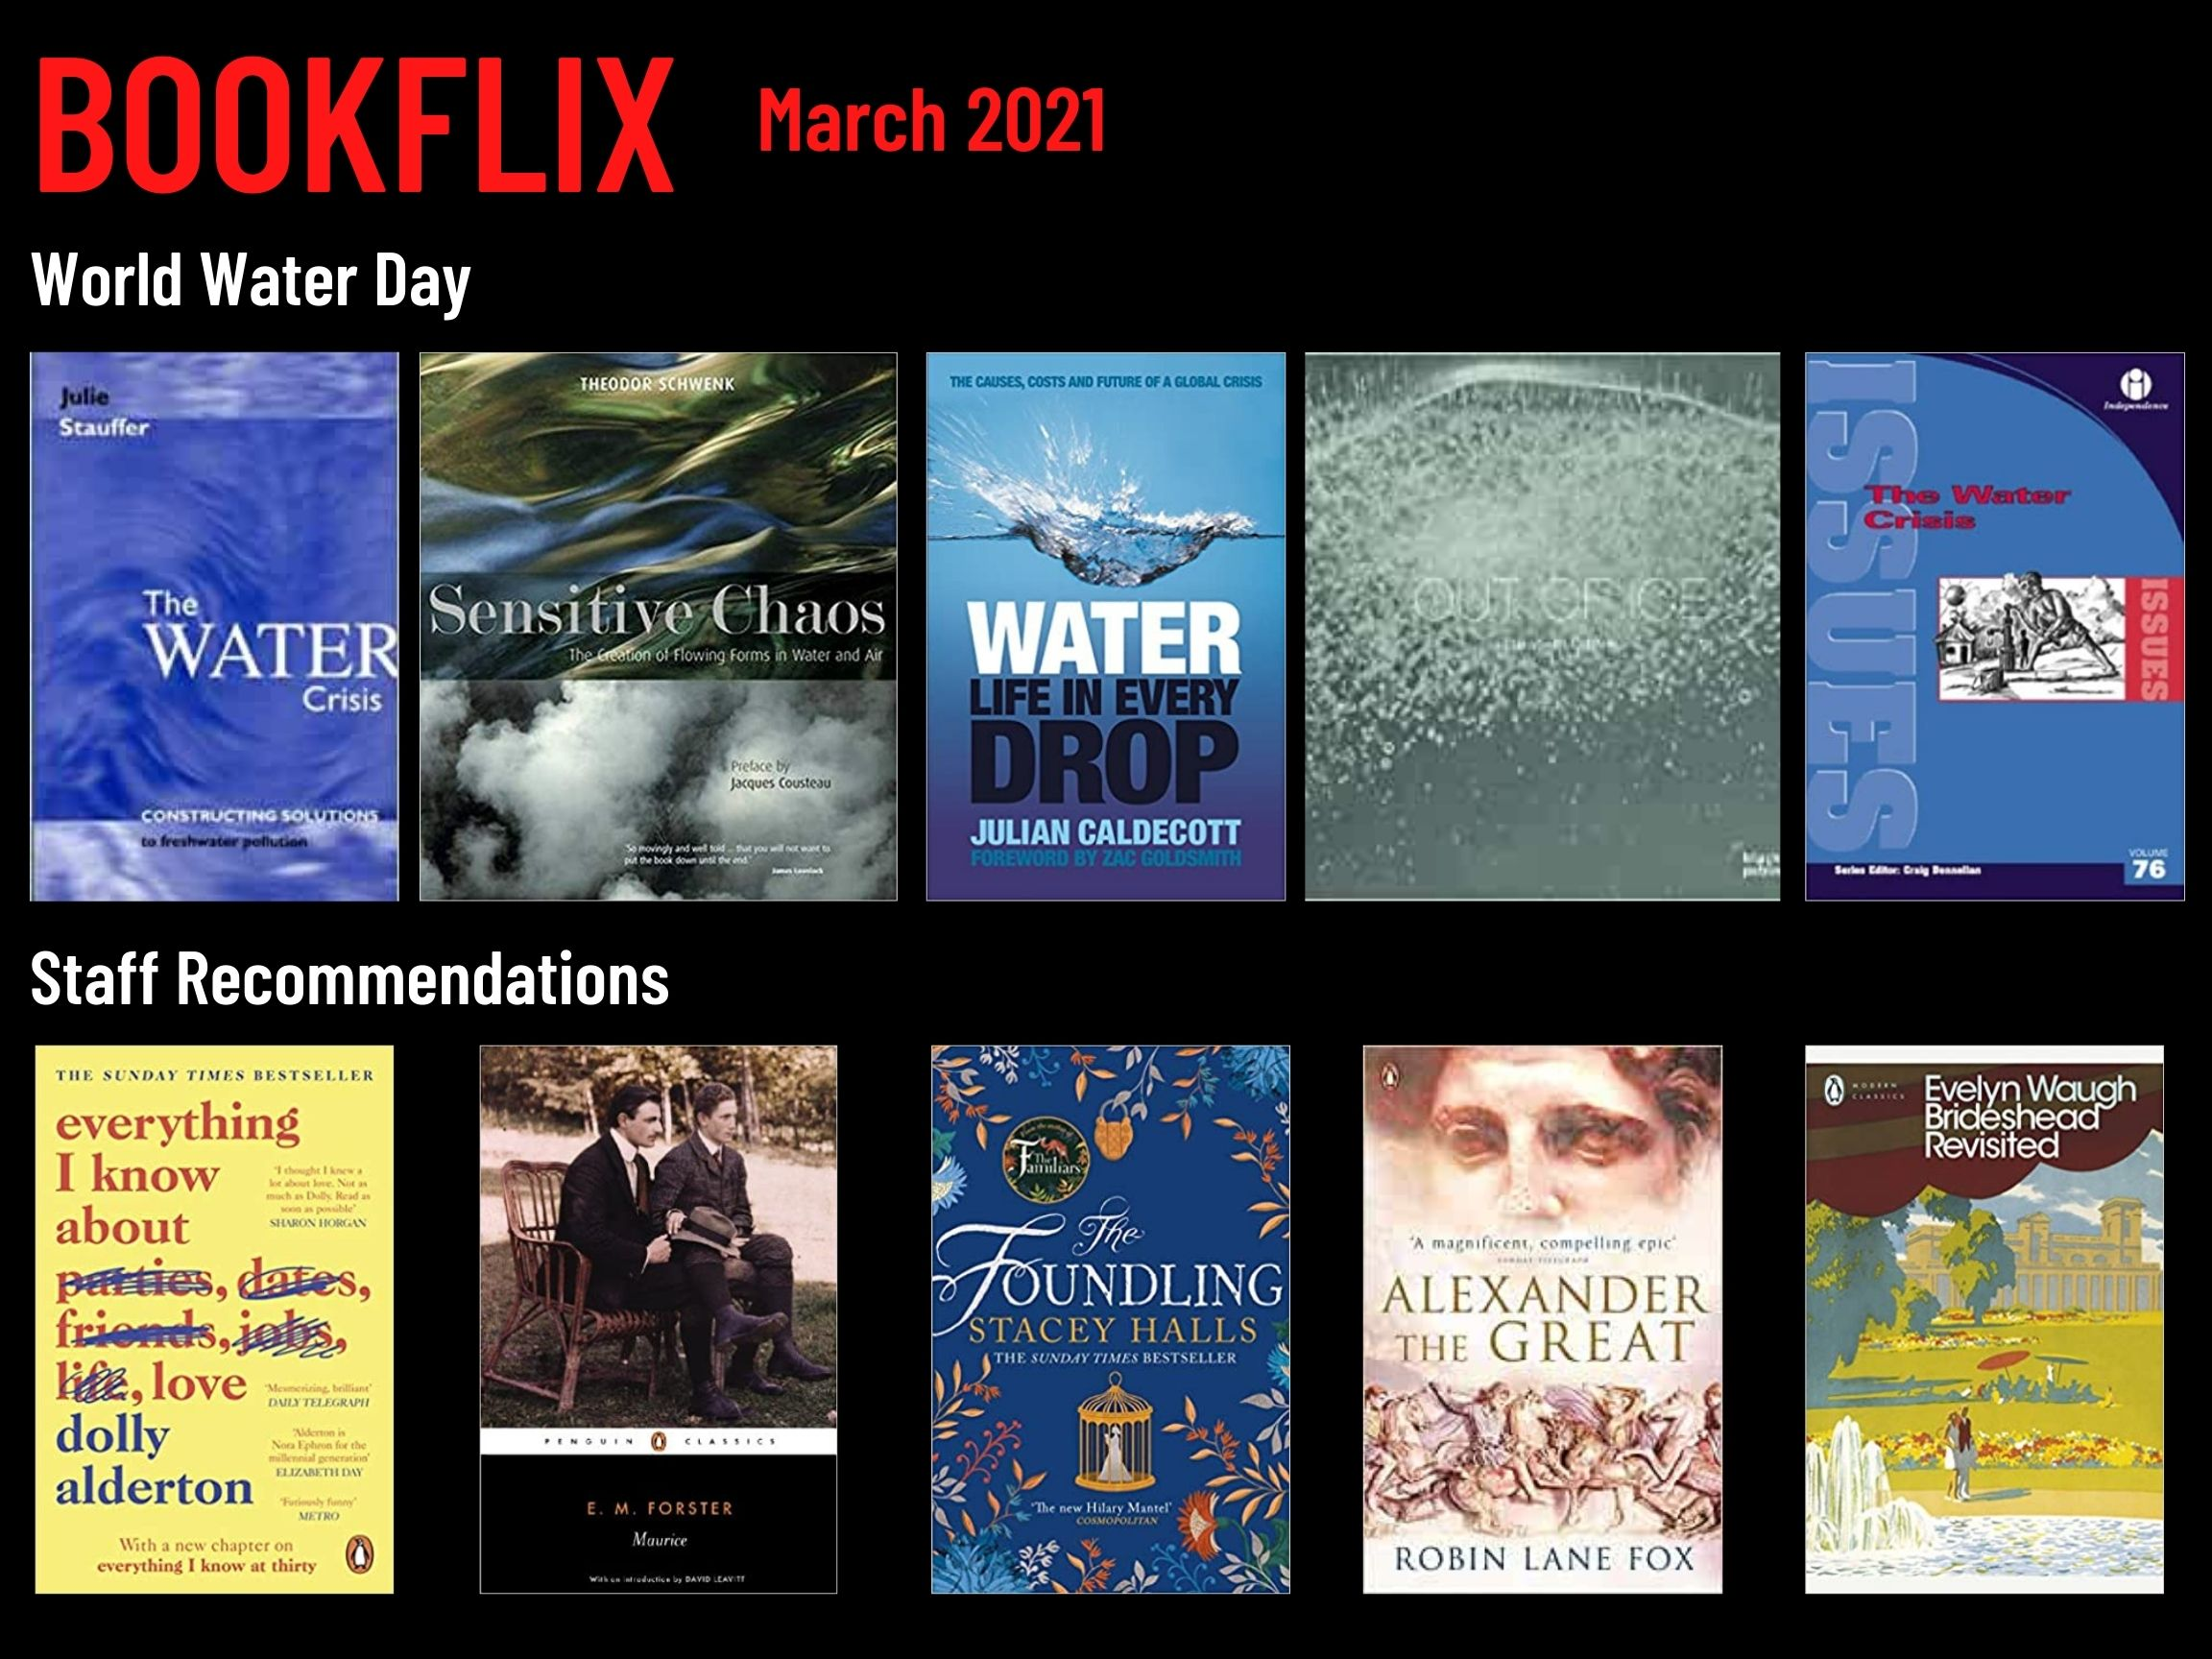 Bookflix page three. Text reads: Bookflix - March 2021. The page has 10 images of book/dvd covers. These are all listed in order in the body text below the images.